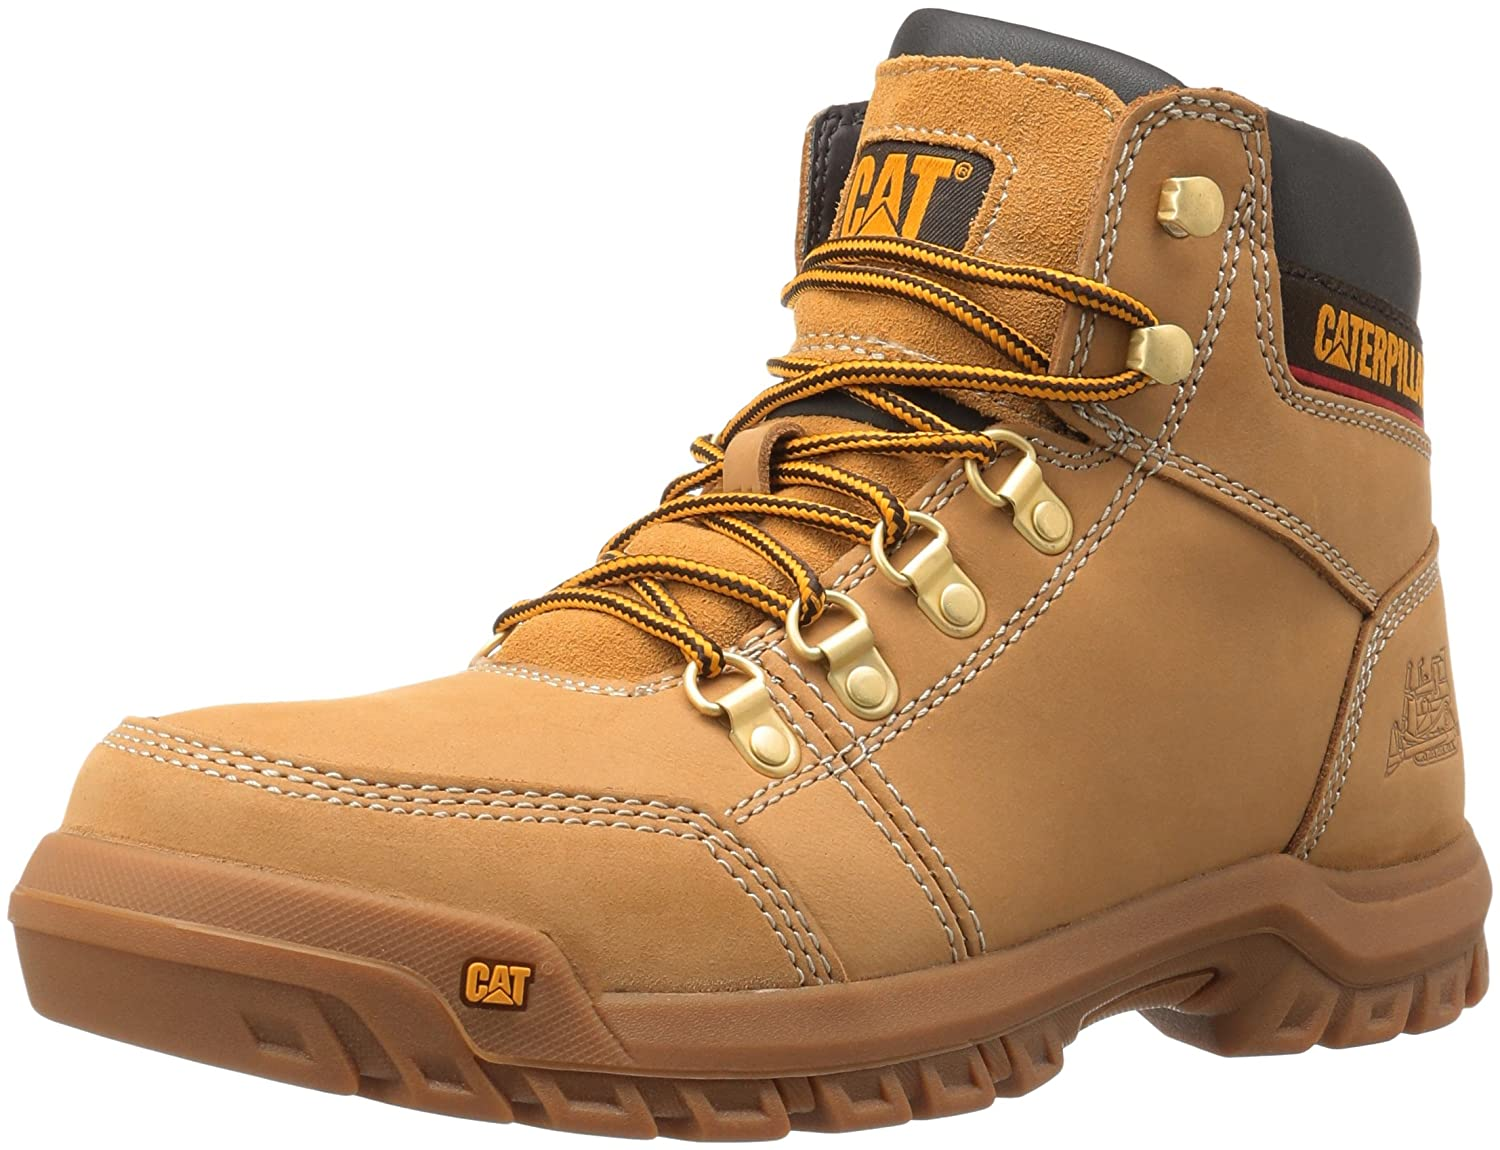 Caterpillar Men's Outline Work Boot OUTLINE-M